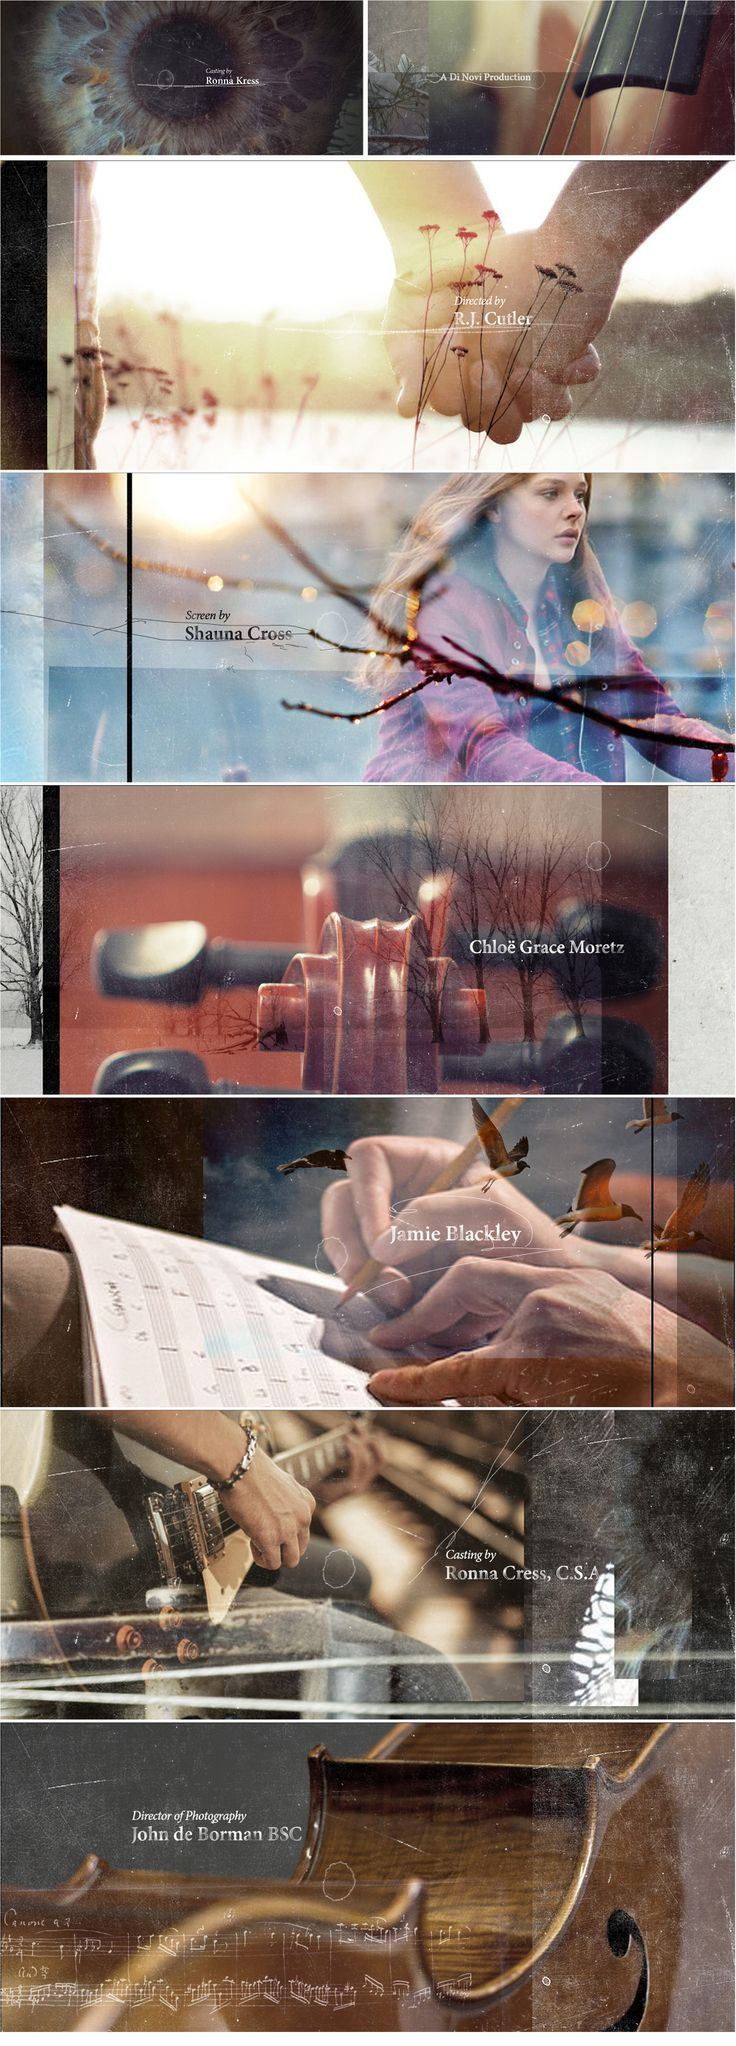 What I like about this image is they have nice double exposure images. Also, they have nicely selected and placed nature images and lifestyle images.